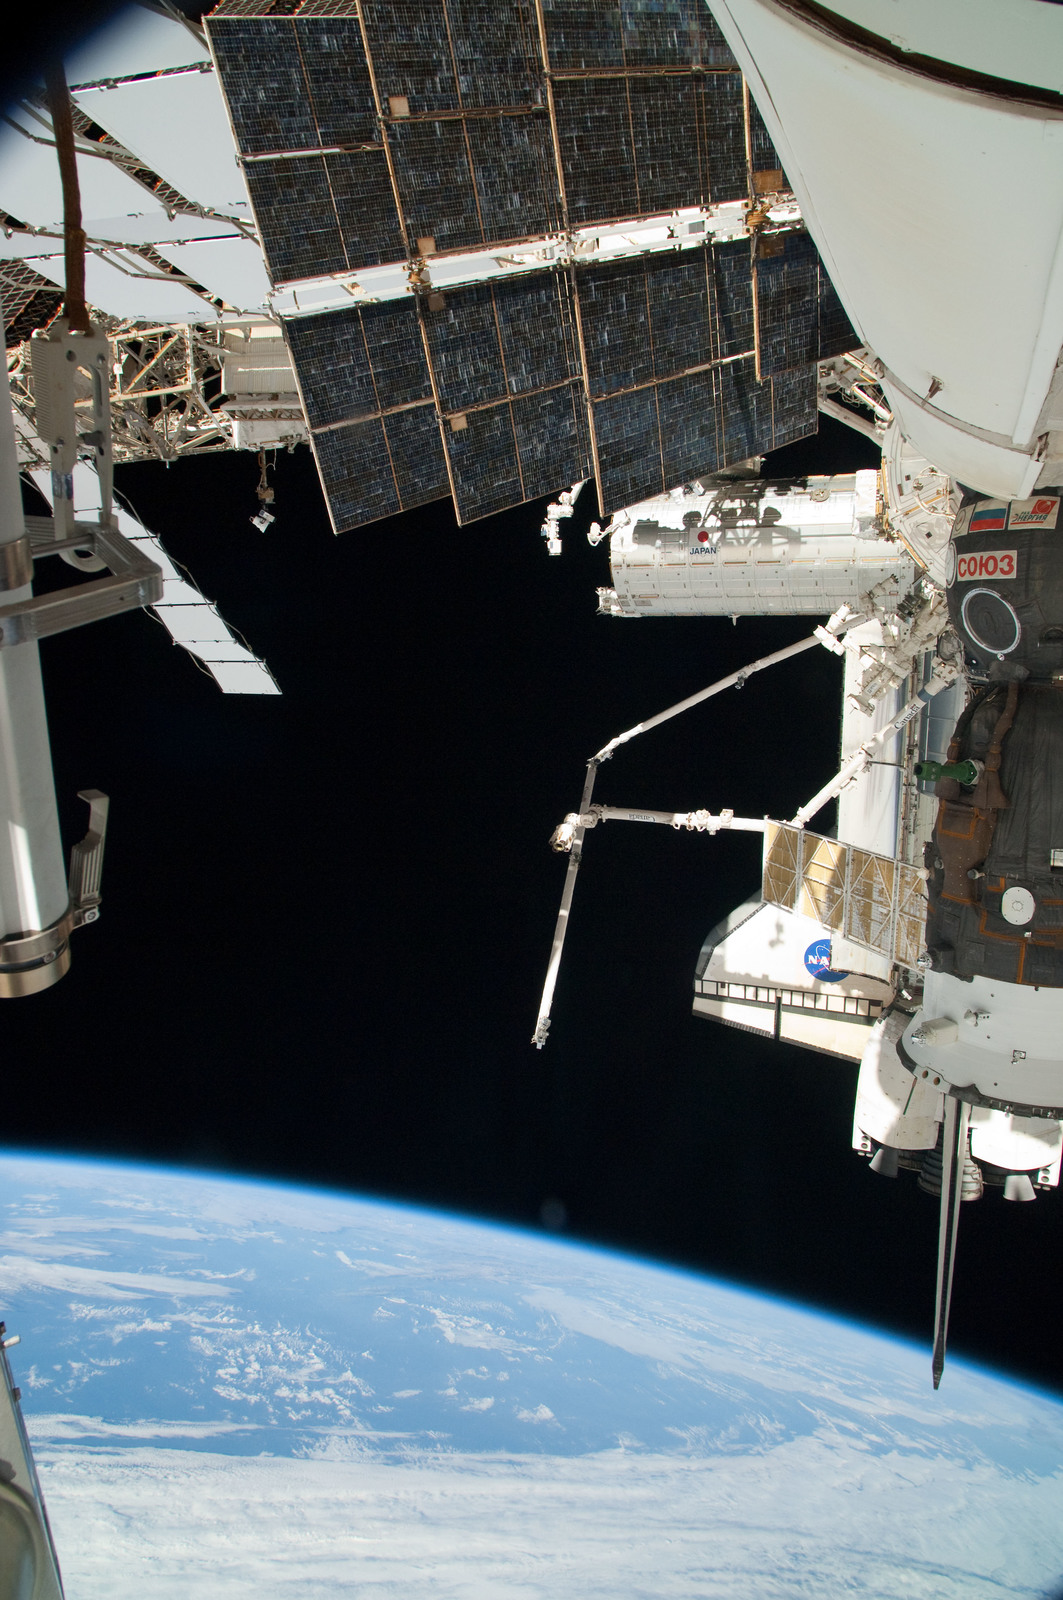 S126E025059 - STS-126 - View of ISS, Docked Soyuz and Endeavour